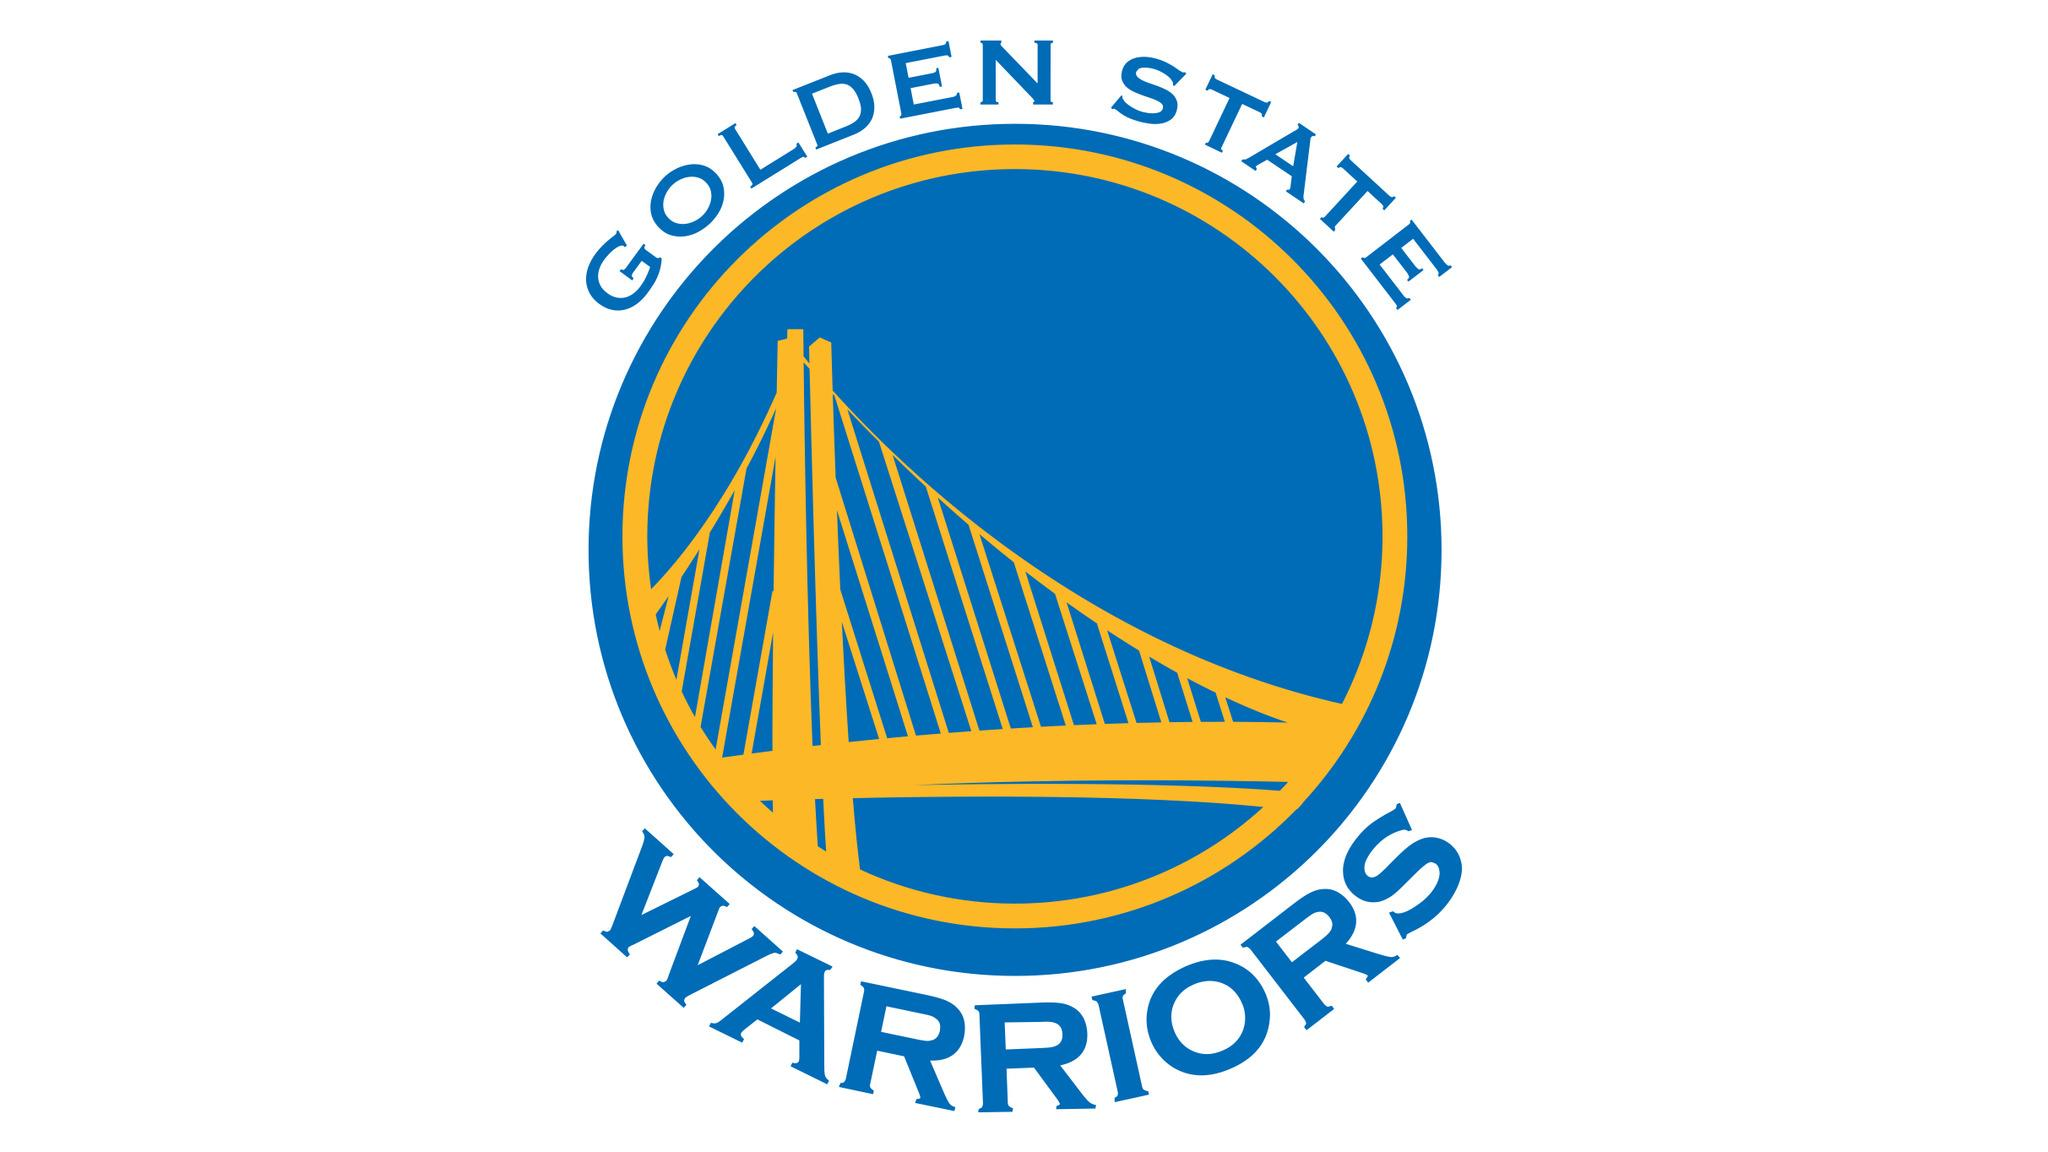 Golden State Warriors vs. Milwaukee Bucks at Oracle Arena - Oakland, CA 94621